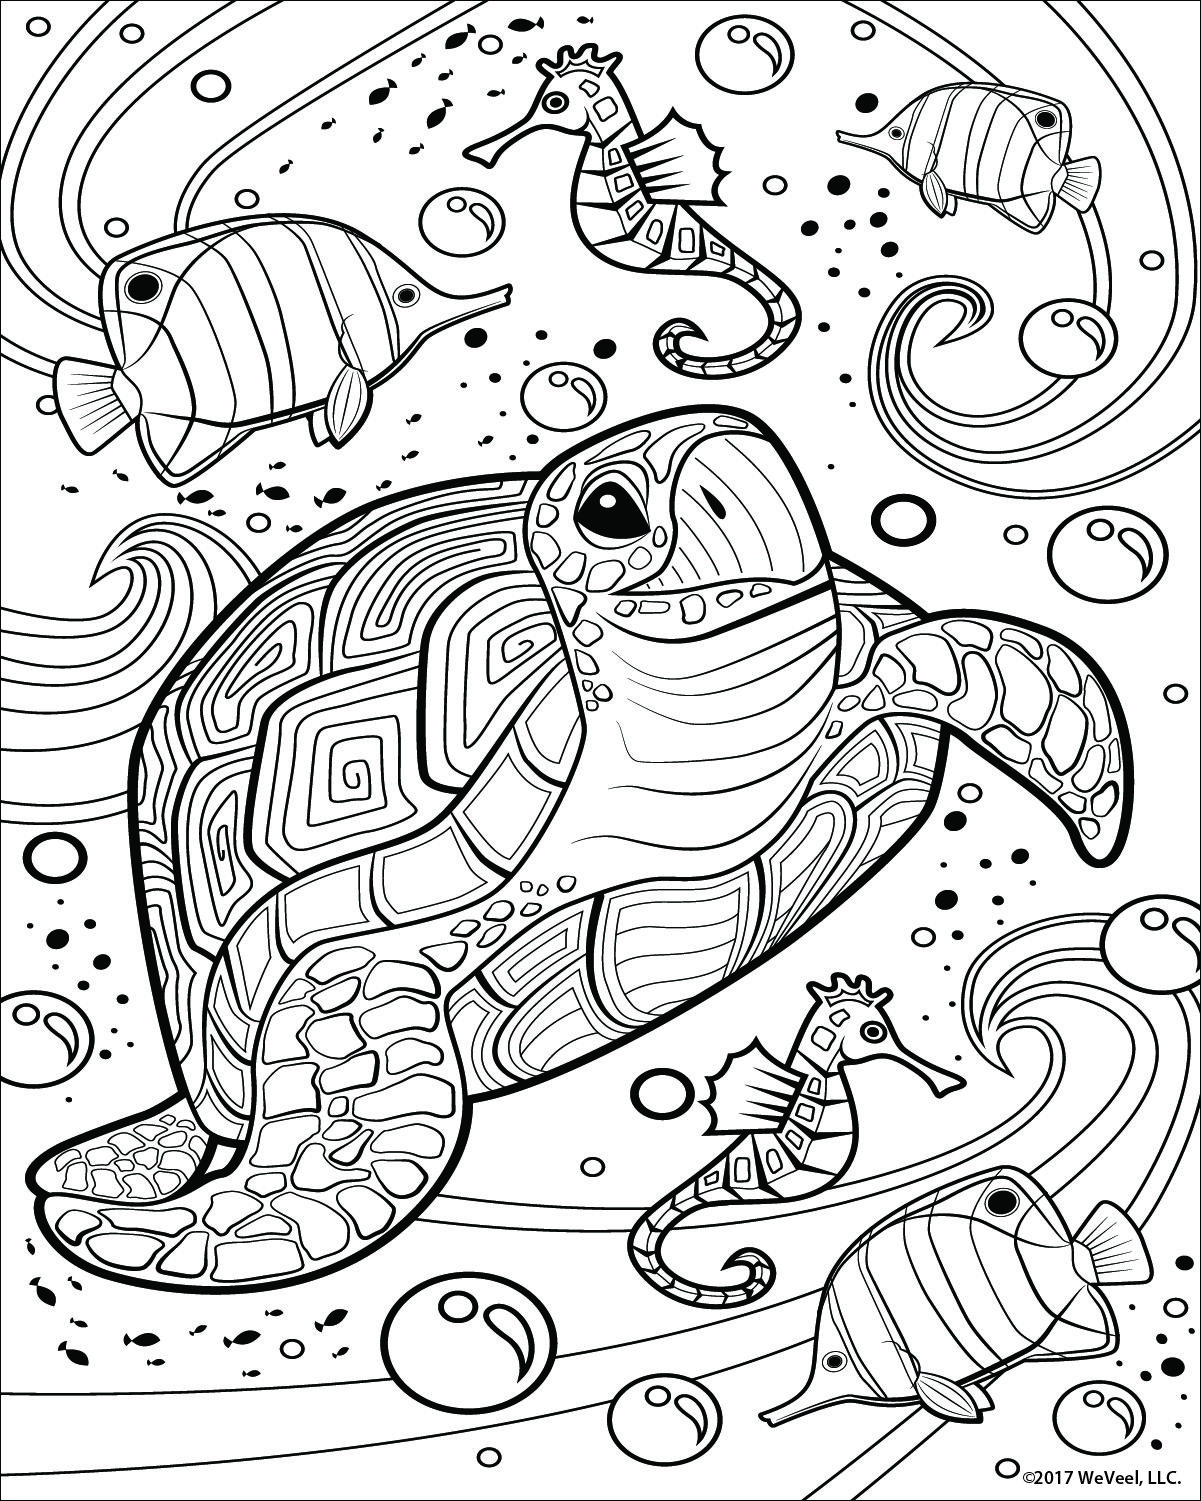 Free Printable Coloring Pages At Scentos Cute To Download And Print For